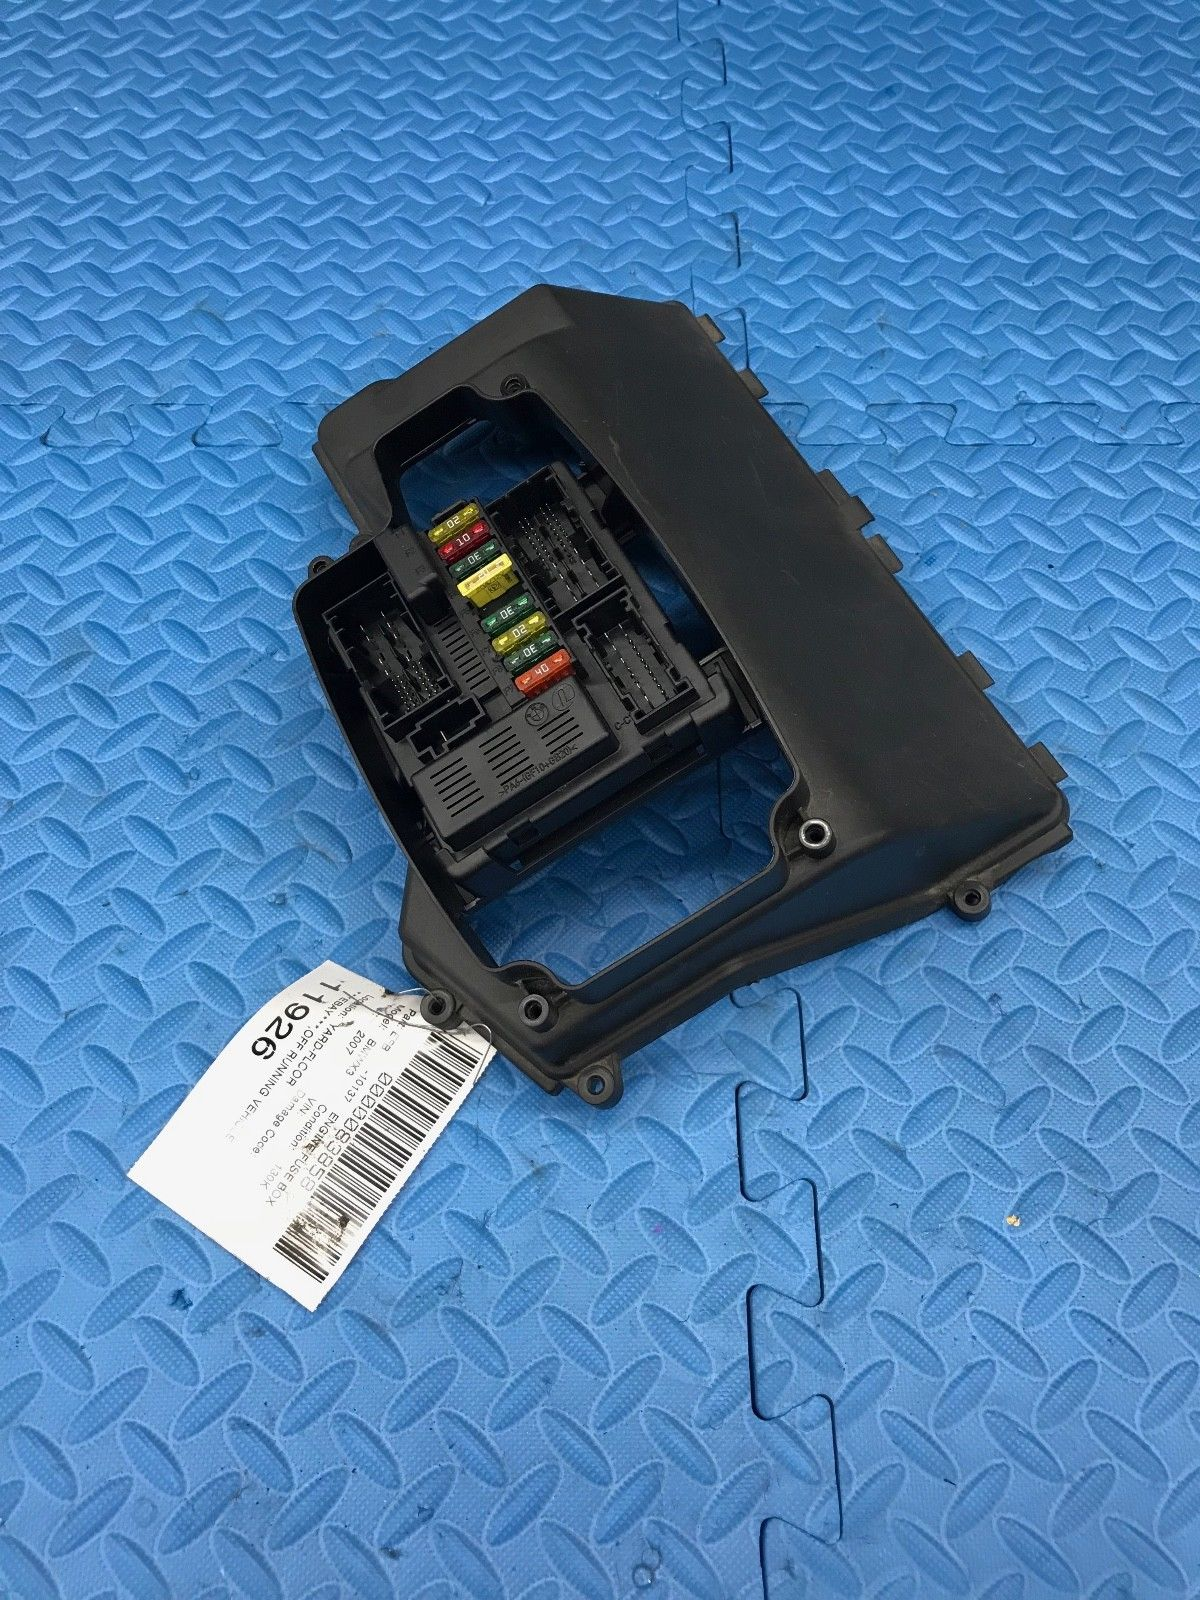 hight resolution of bmw x3 engine relay fuse power distribution junction box module 7 560 626 01 does not